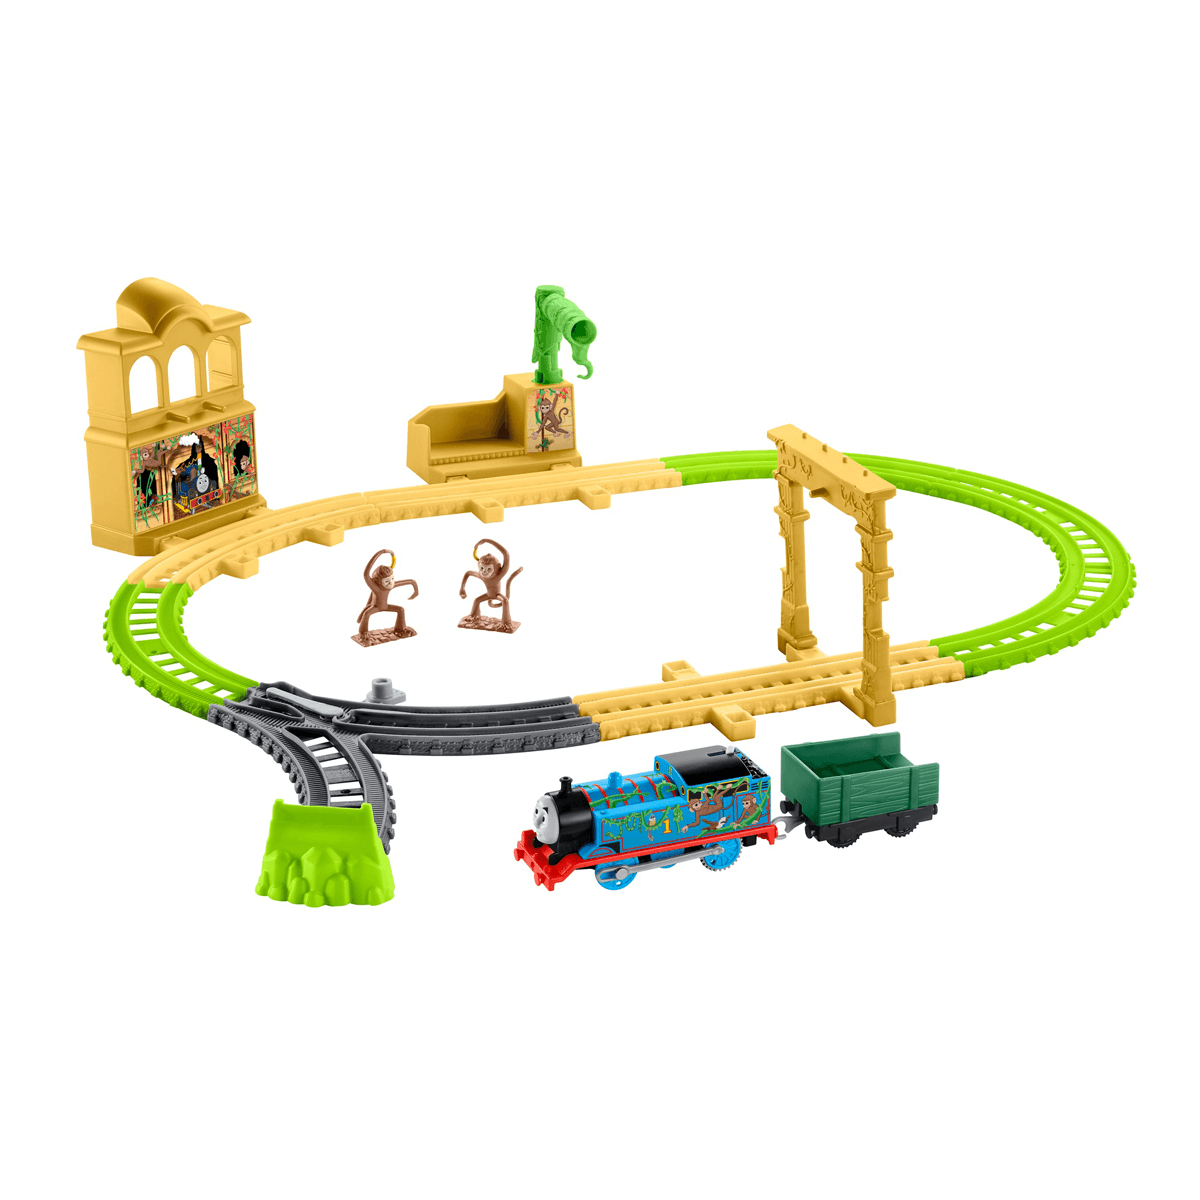 Fisher-Price Thomas & Friends TrackMaster - Monkey Palace Playset from Early Learning Center